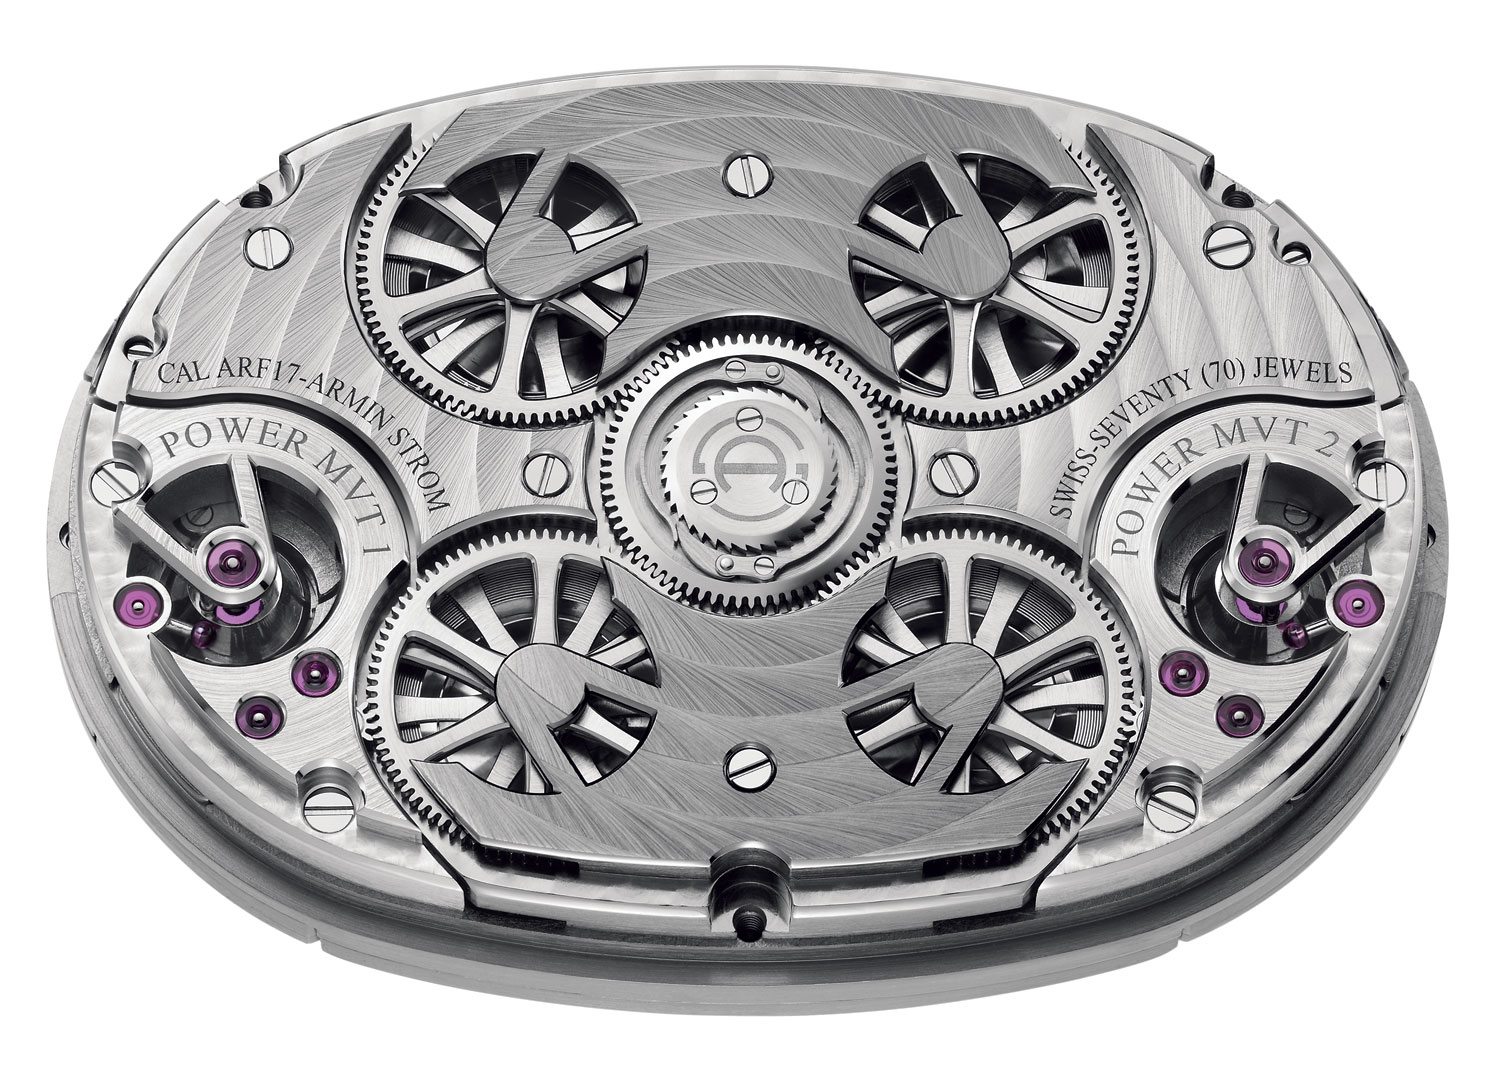 Maximum Horology: The Armin Strom Dual Time Resonance Sapphire 4